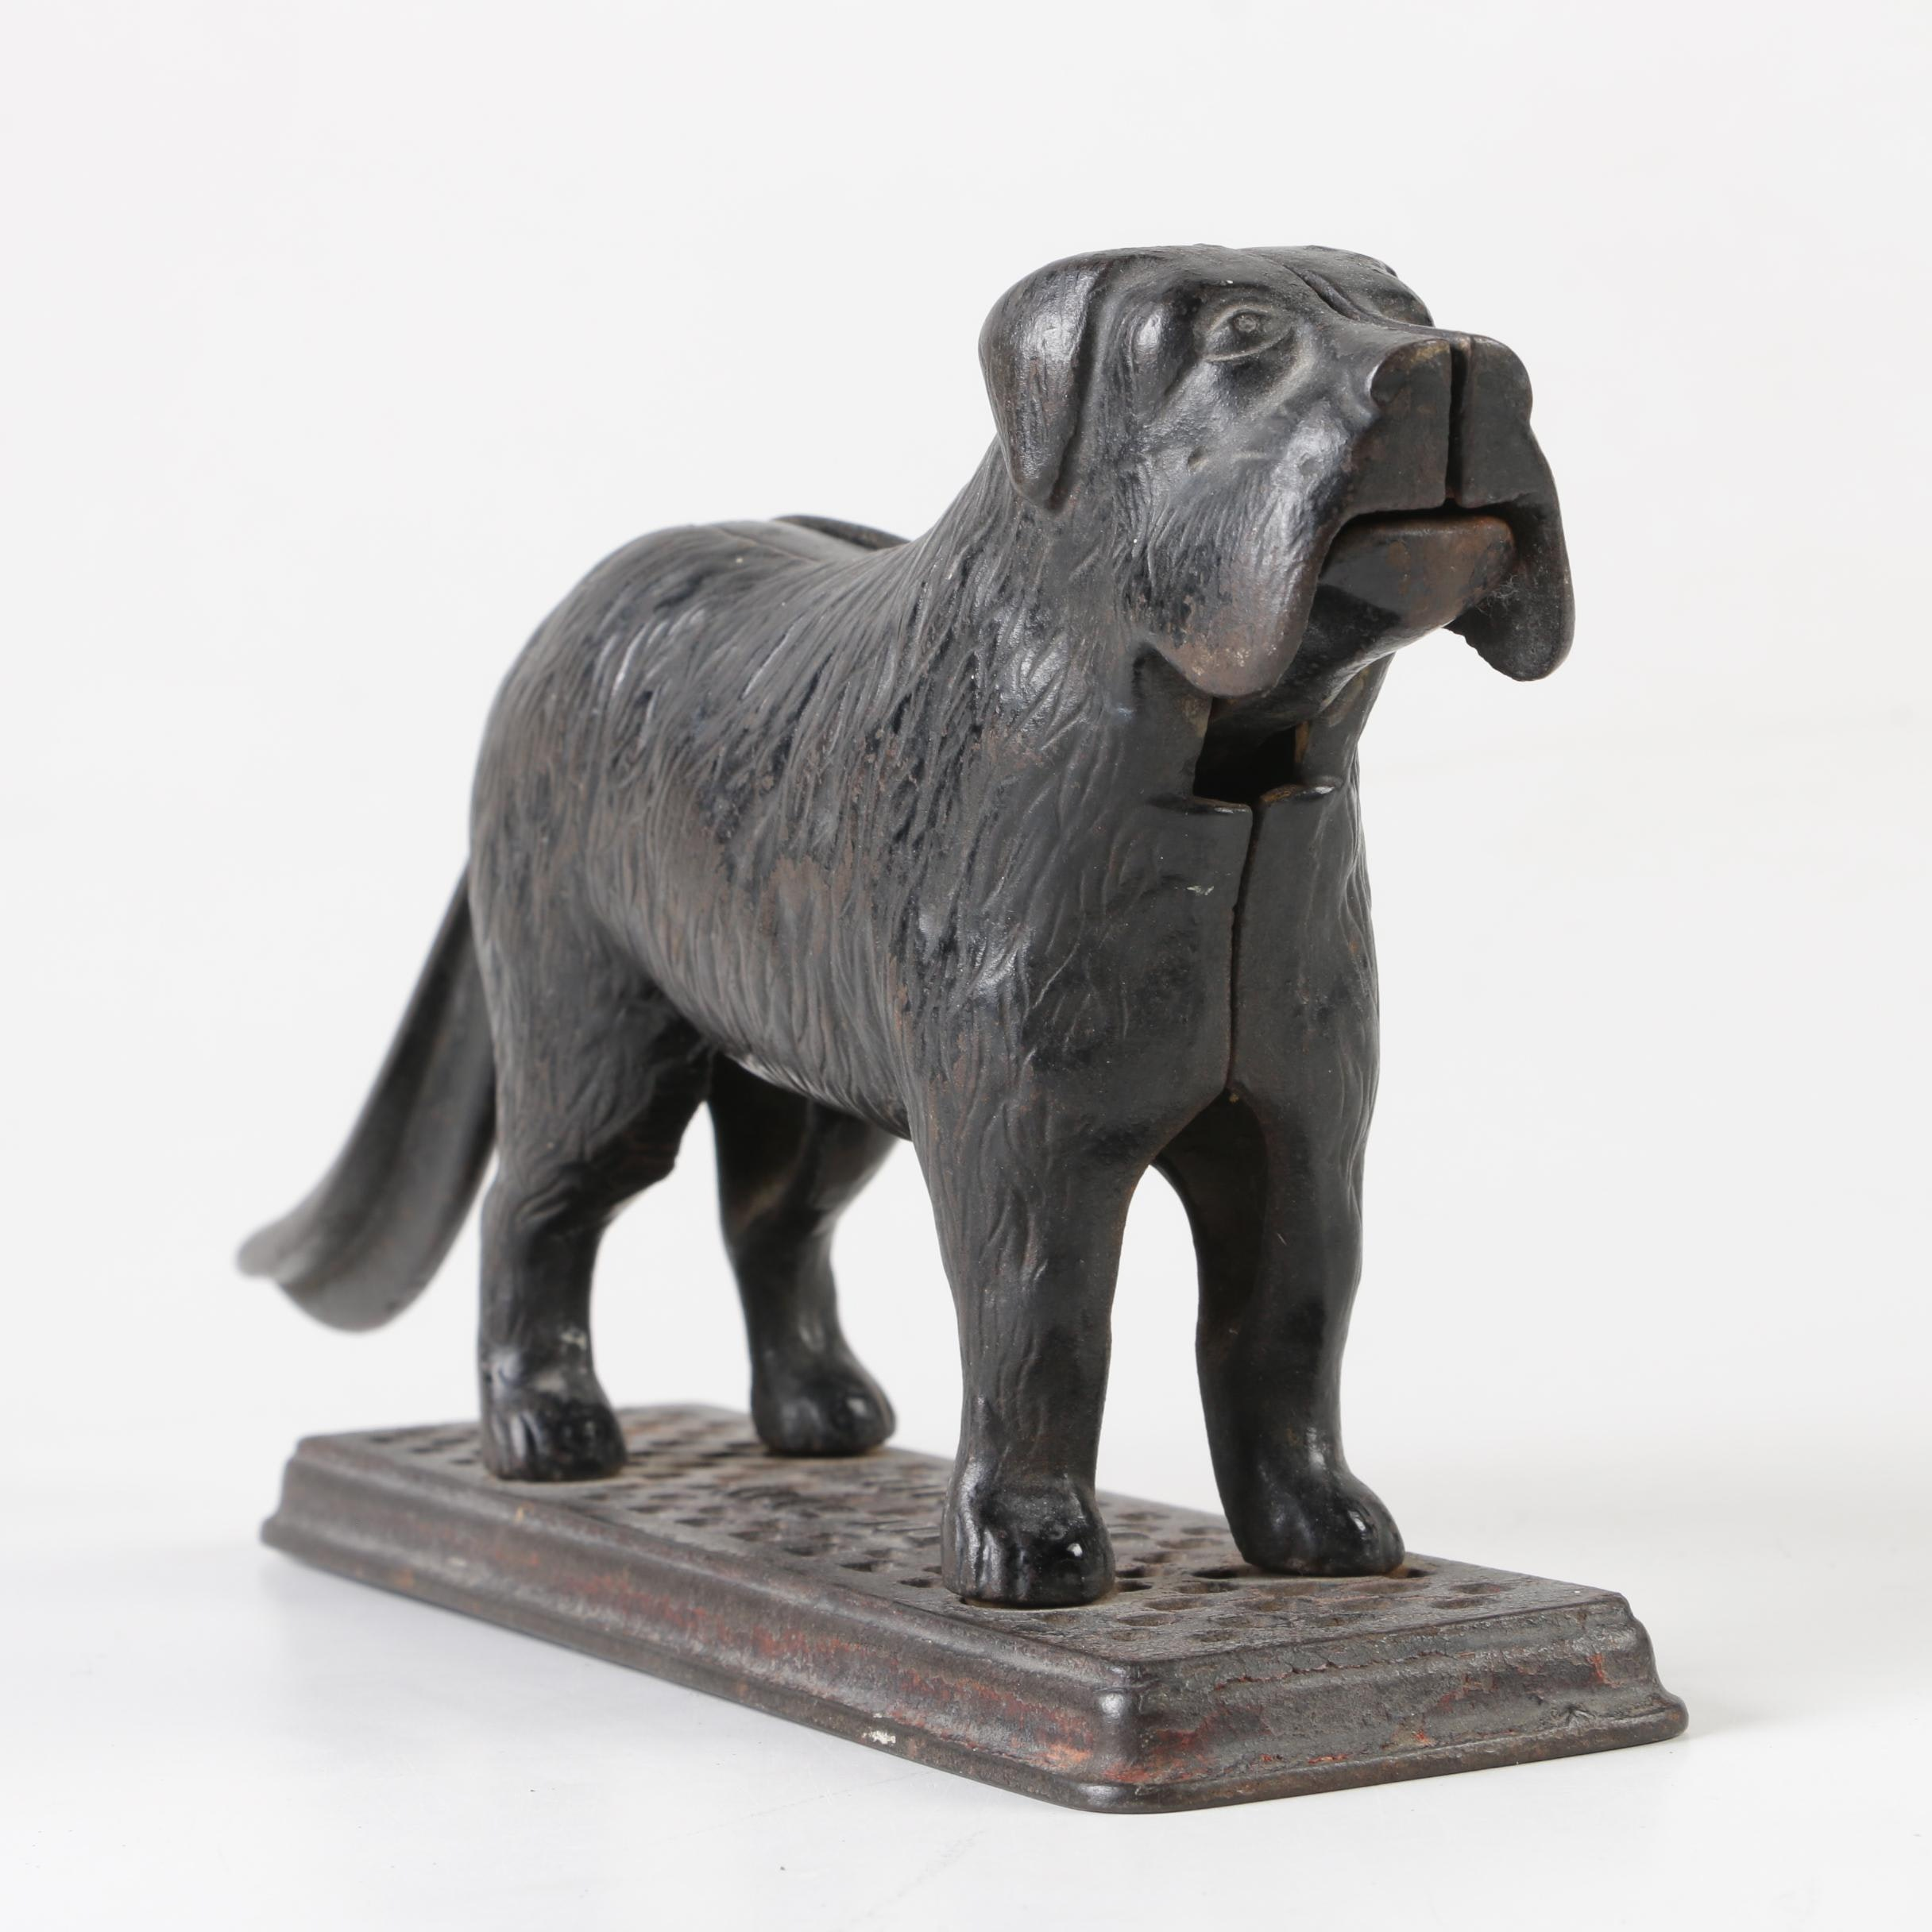 Harper Supply Co. Cast Iron Dog Tray Nutcracker, Late 19th/Early 20th Century